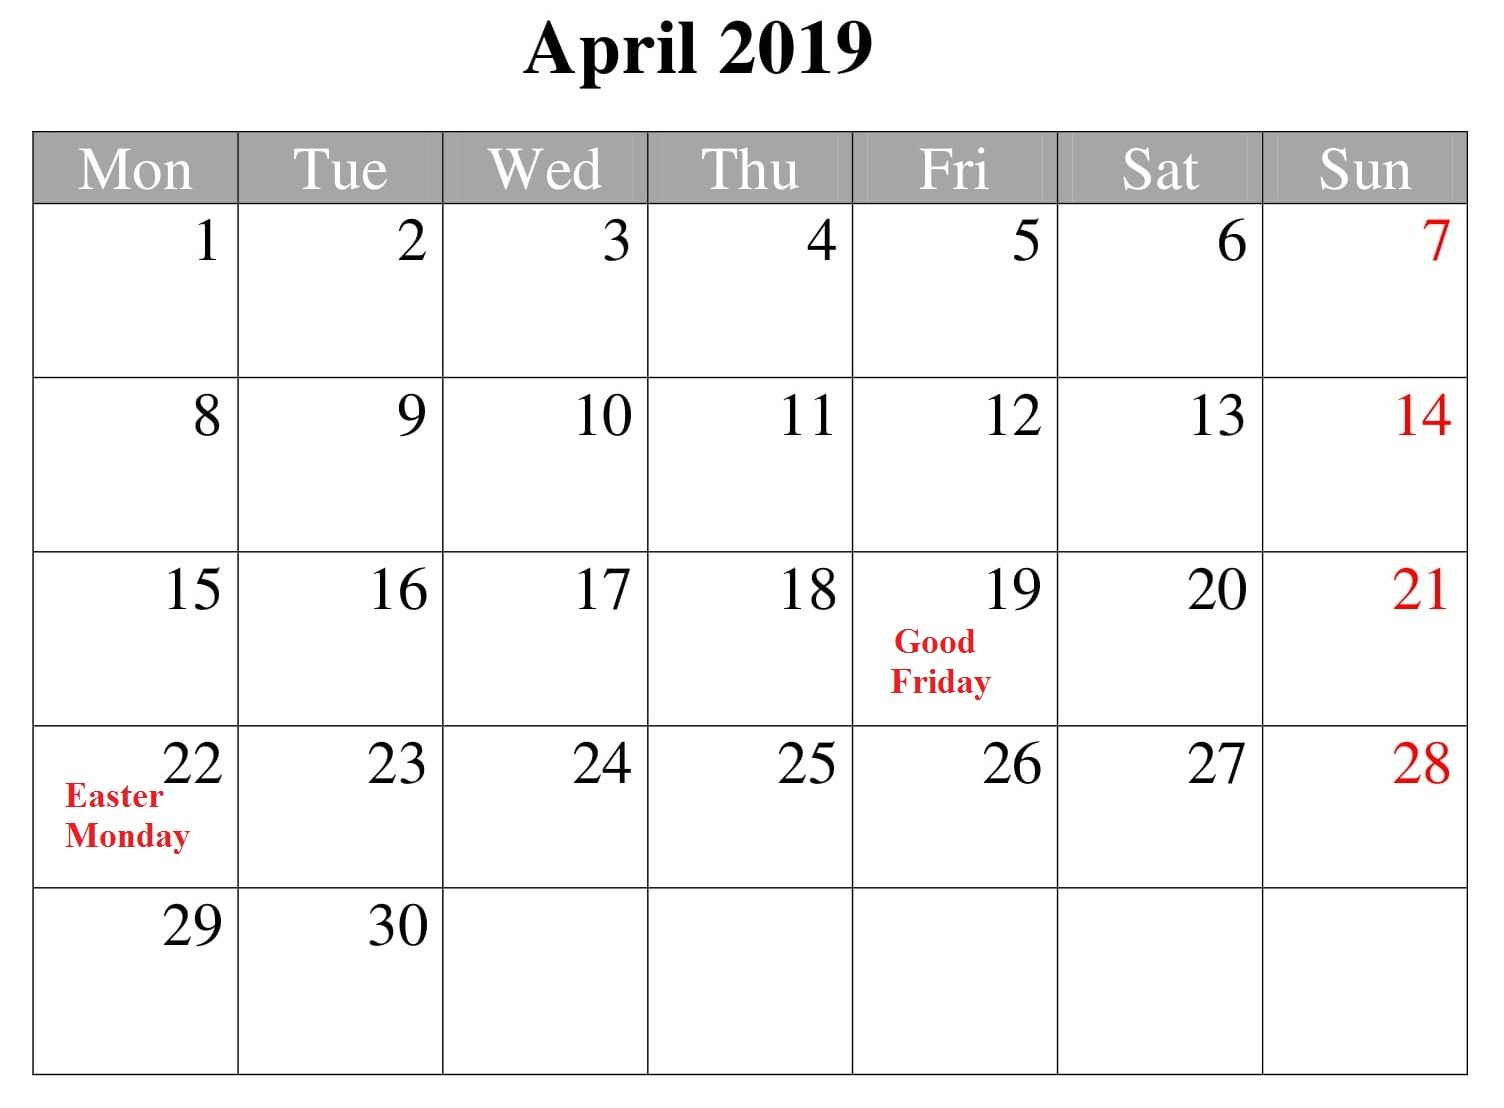 Free April 2019 Calendar With Holidays (With images